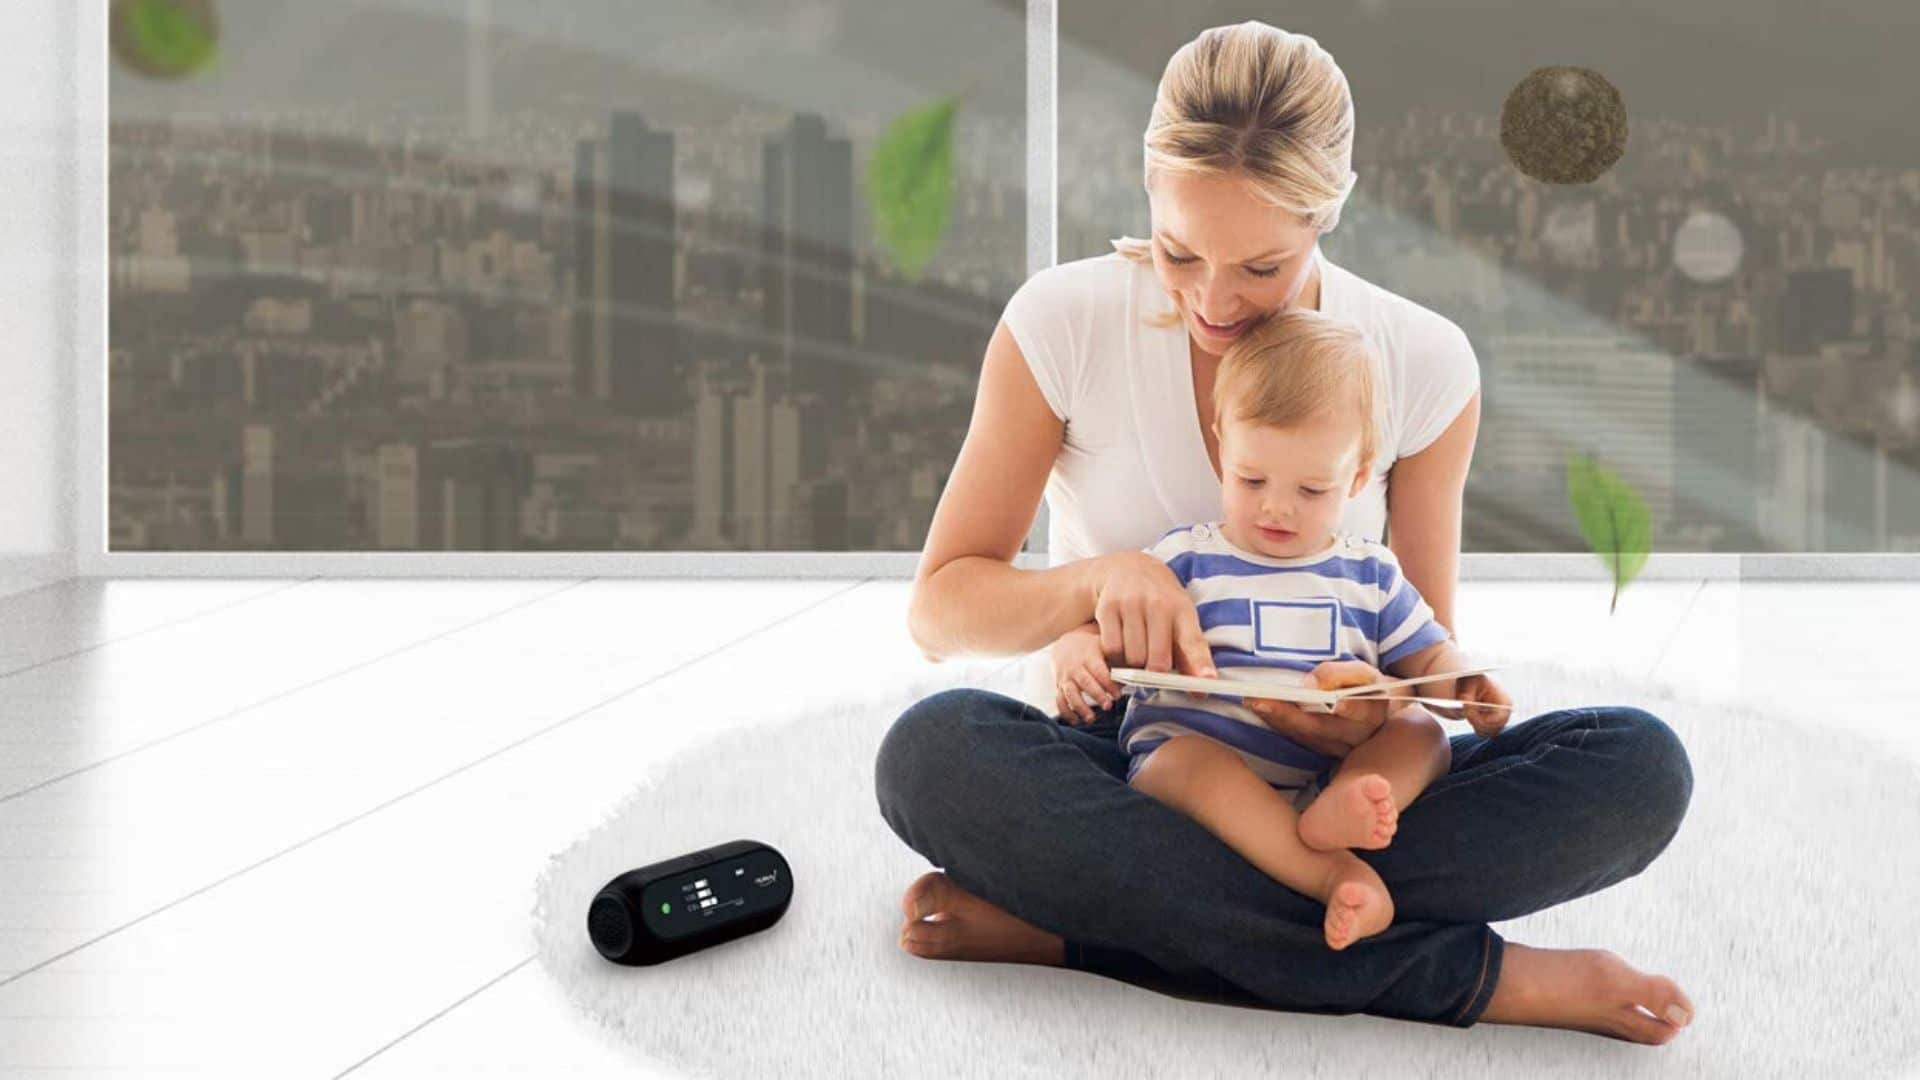 picture of woman holding baby beside Humai i HI 150 Advanced Portable Air Quality Monitor